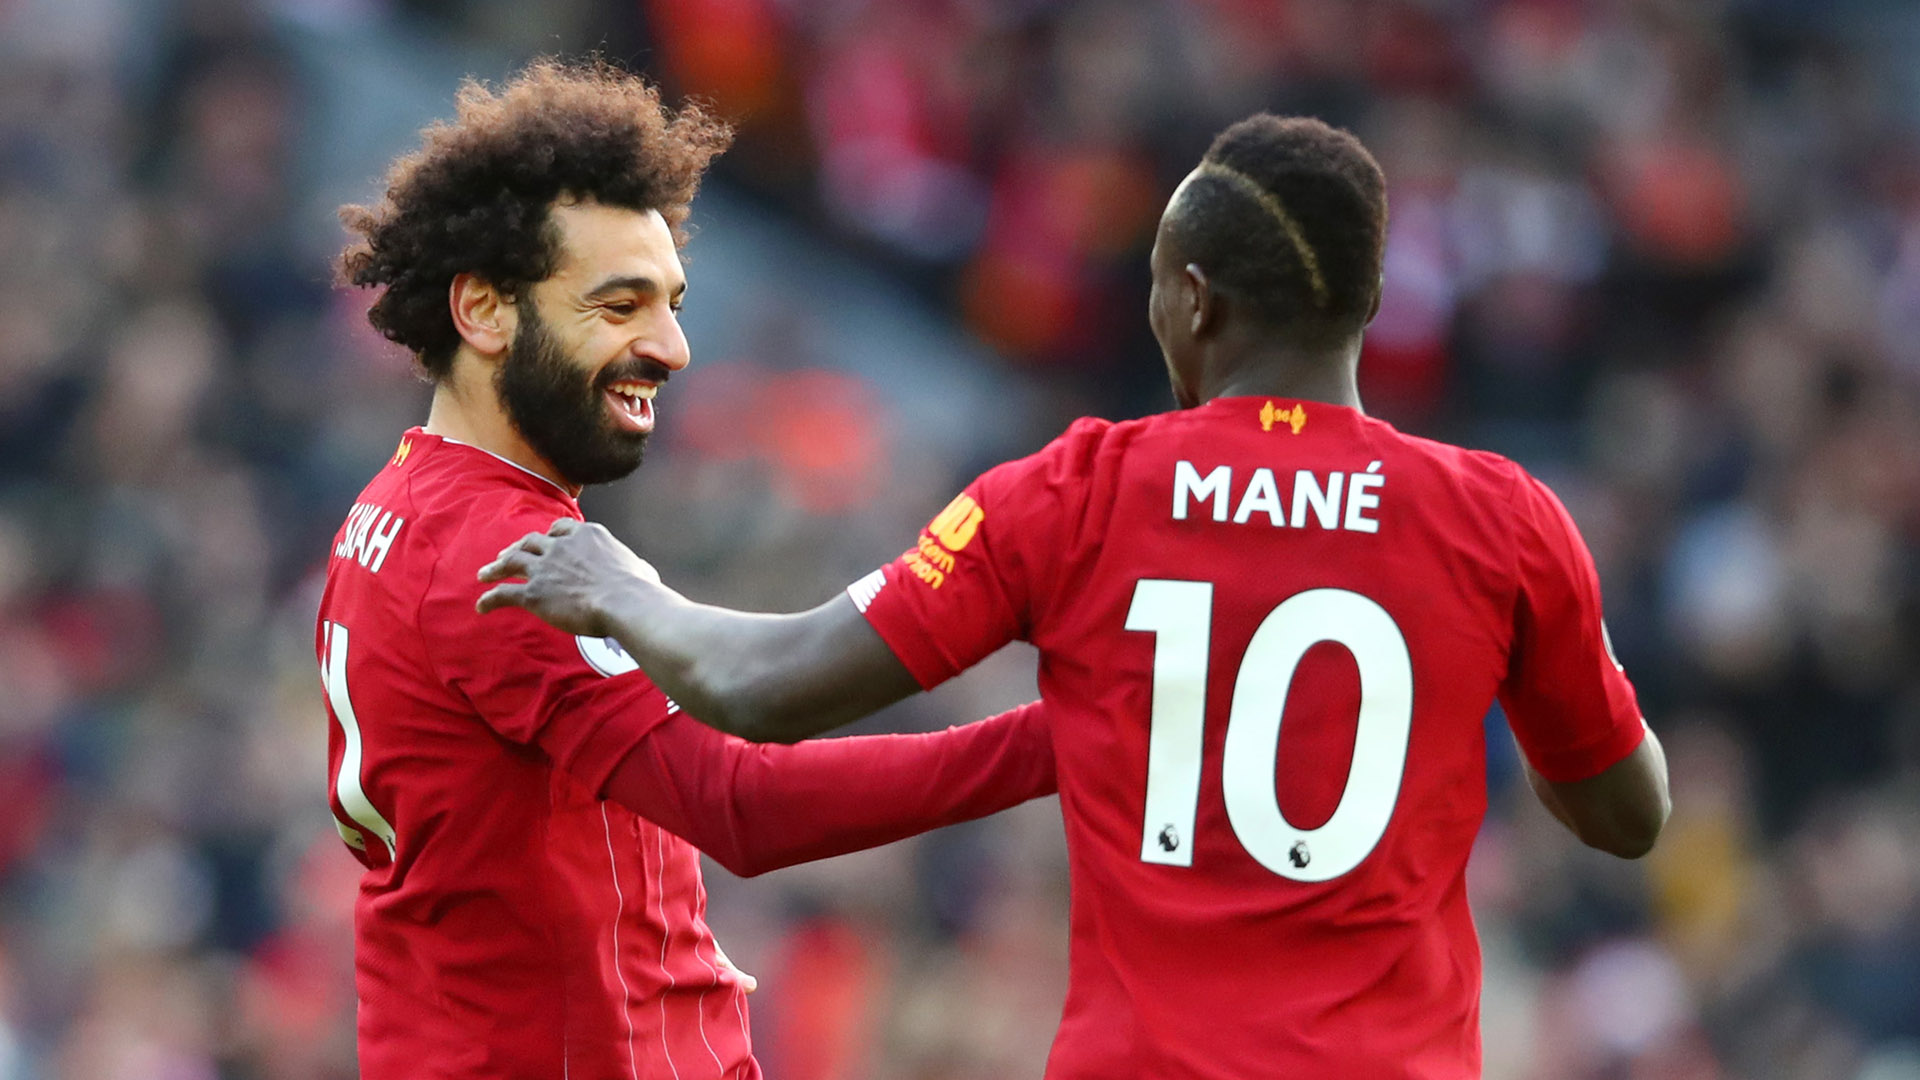 Mane and Salah partnership continues in Liverpool victory over Southampton